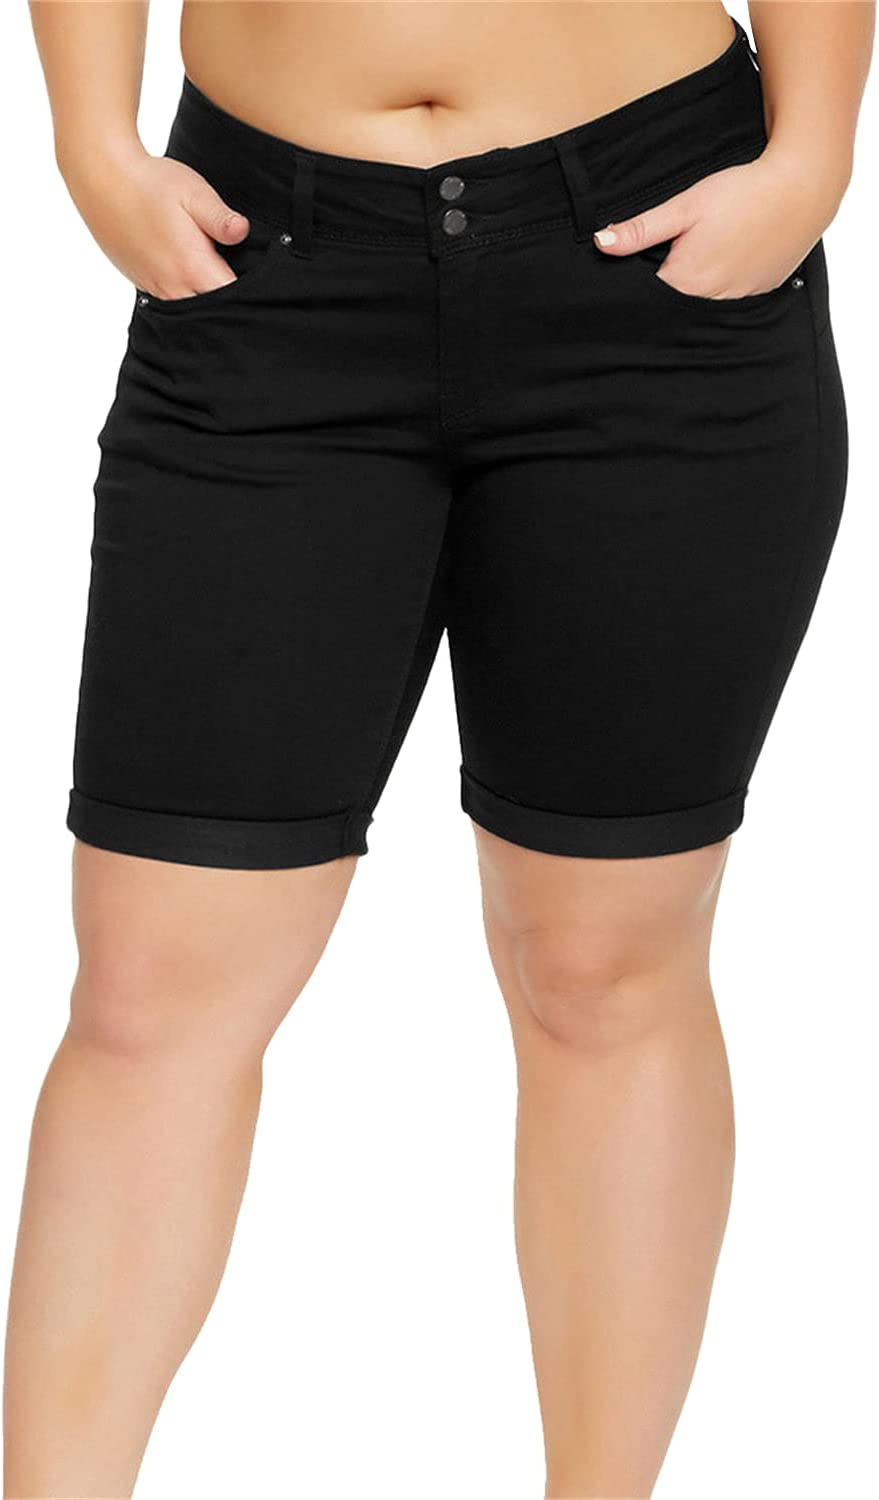 Womens Plus Size Classic Denim Shorts Mid Rise Stretchy Folded Hem Shorts Jeans 2 Button Relaxed Fit Comfort Jean Short (Black,X-Large)